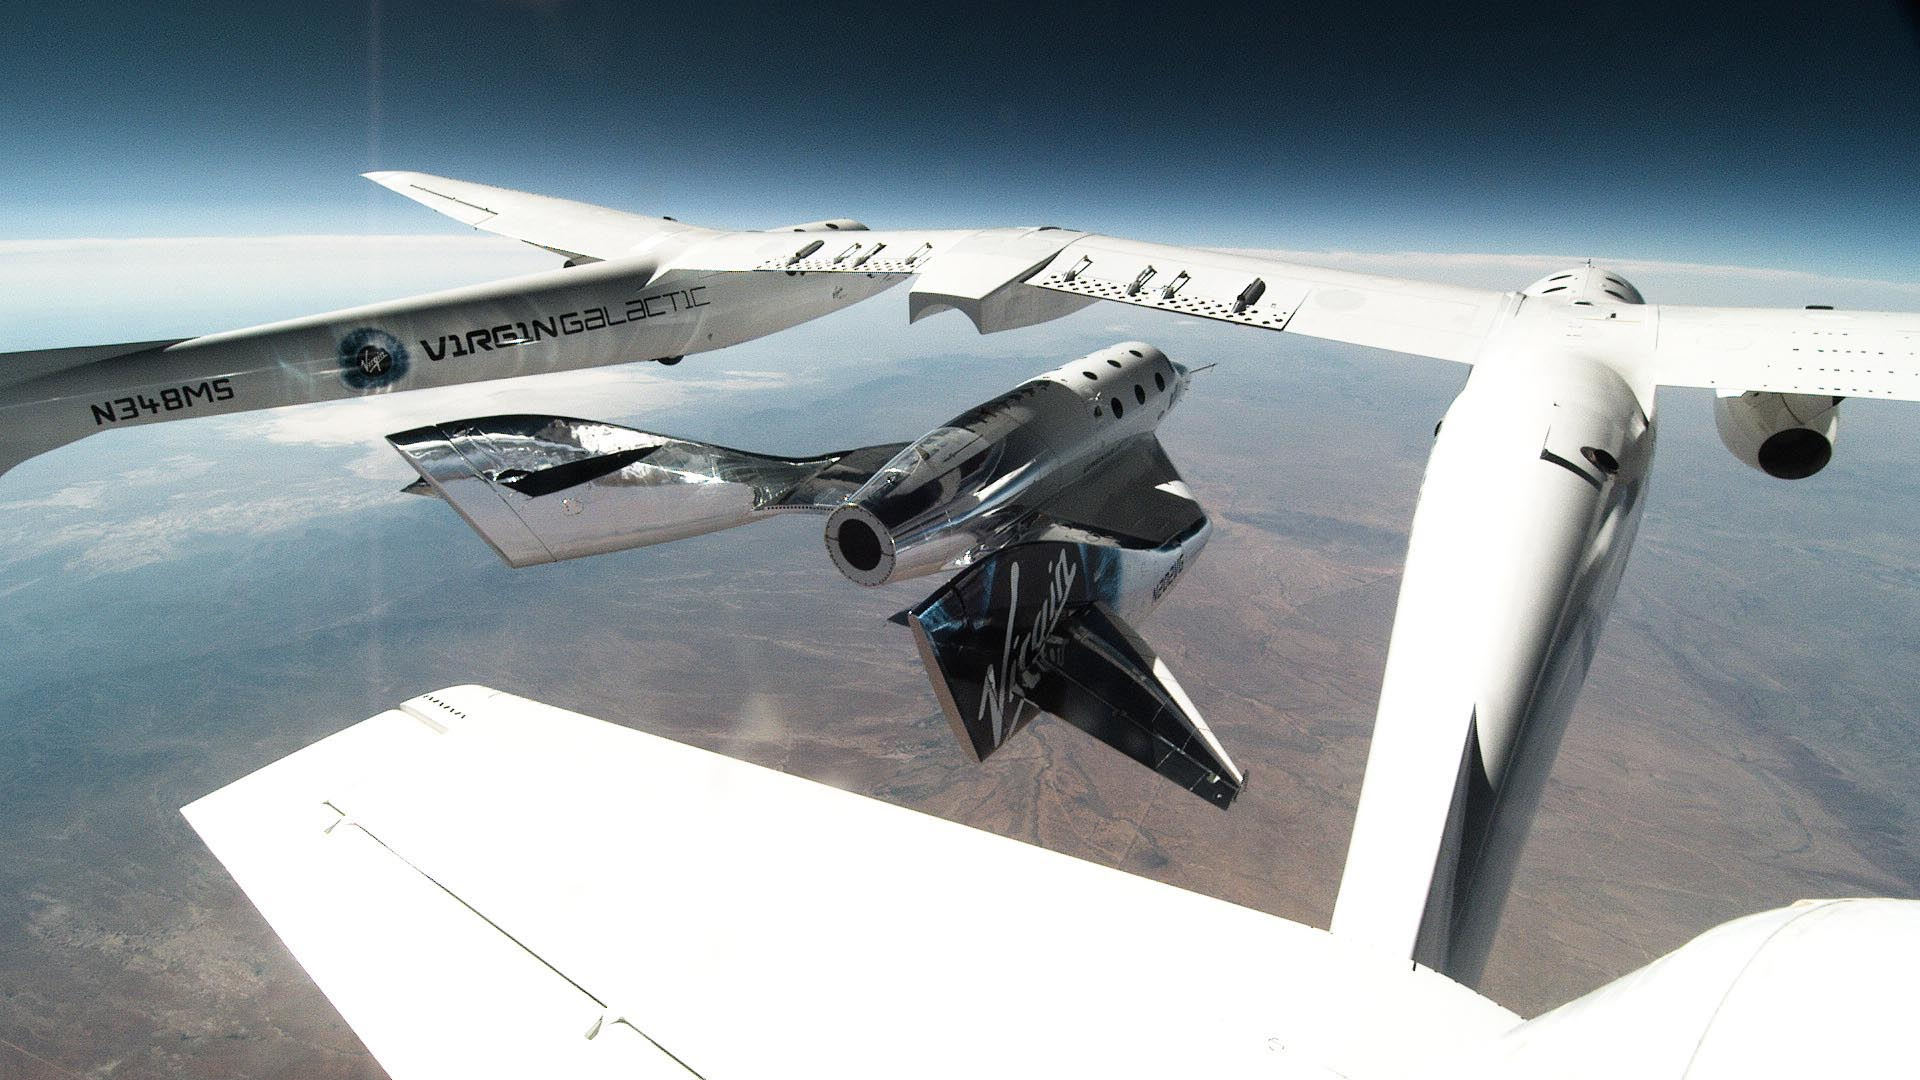 Virgin Galactic planning to launch suborbital test flight this month